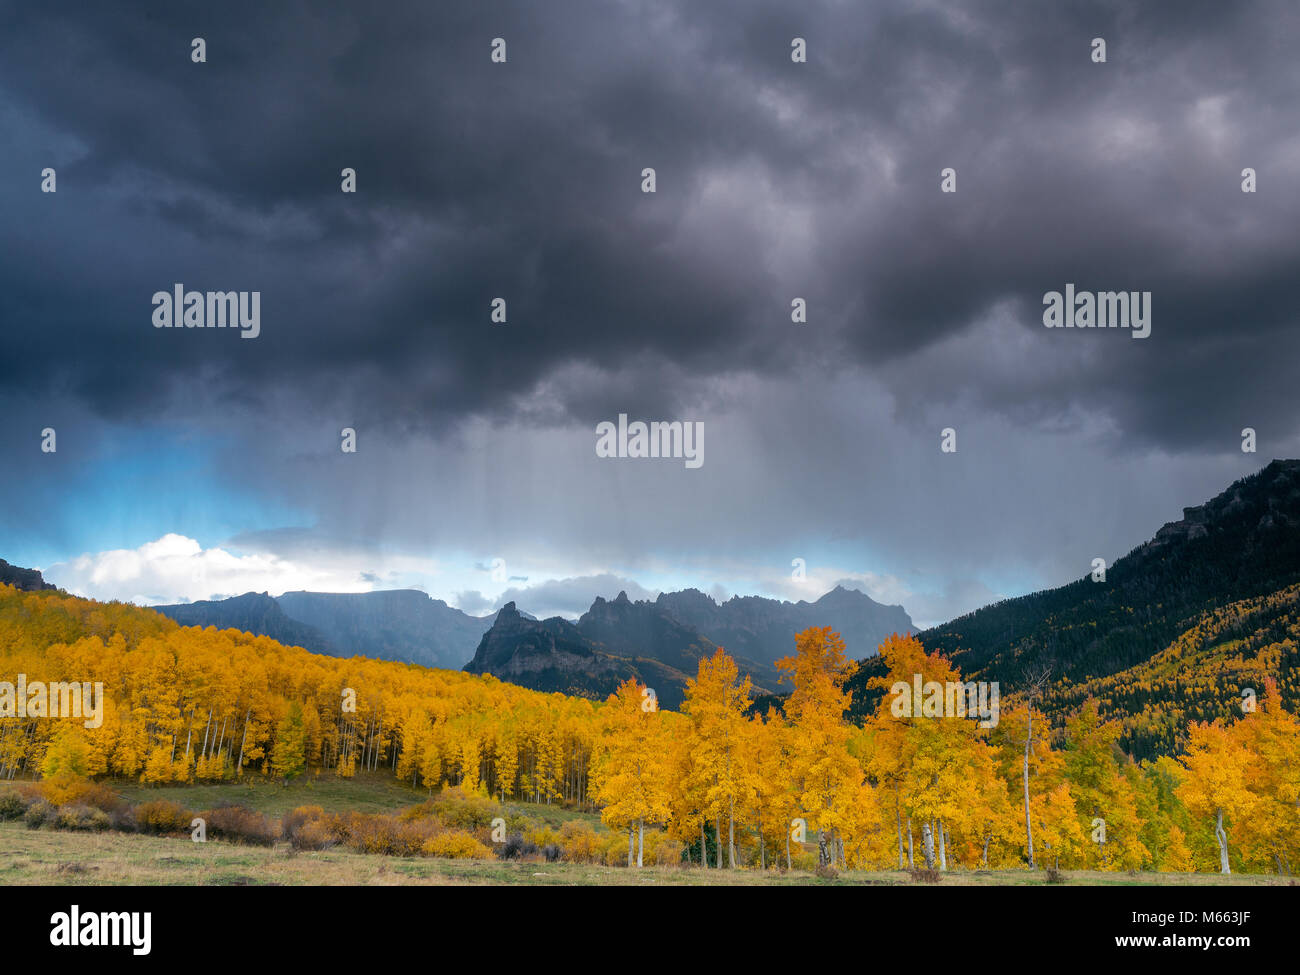 Approaching Storm, Aspens, Cimarron Ridge, Precipice Peak, Uncompahgre National Forest, Colorado - Stock Image